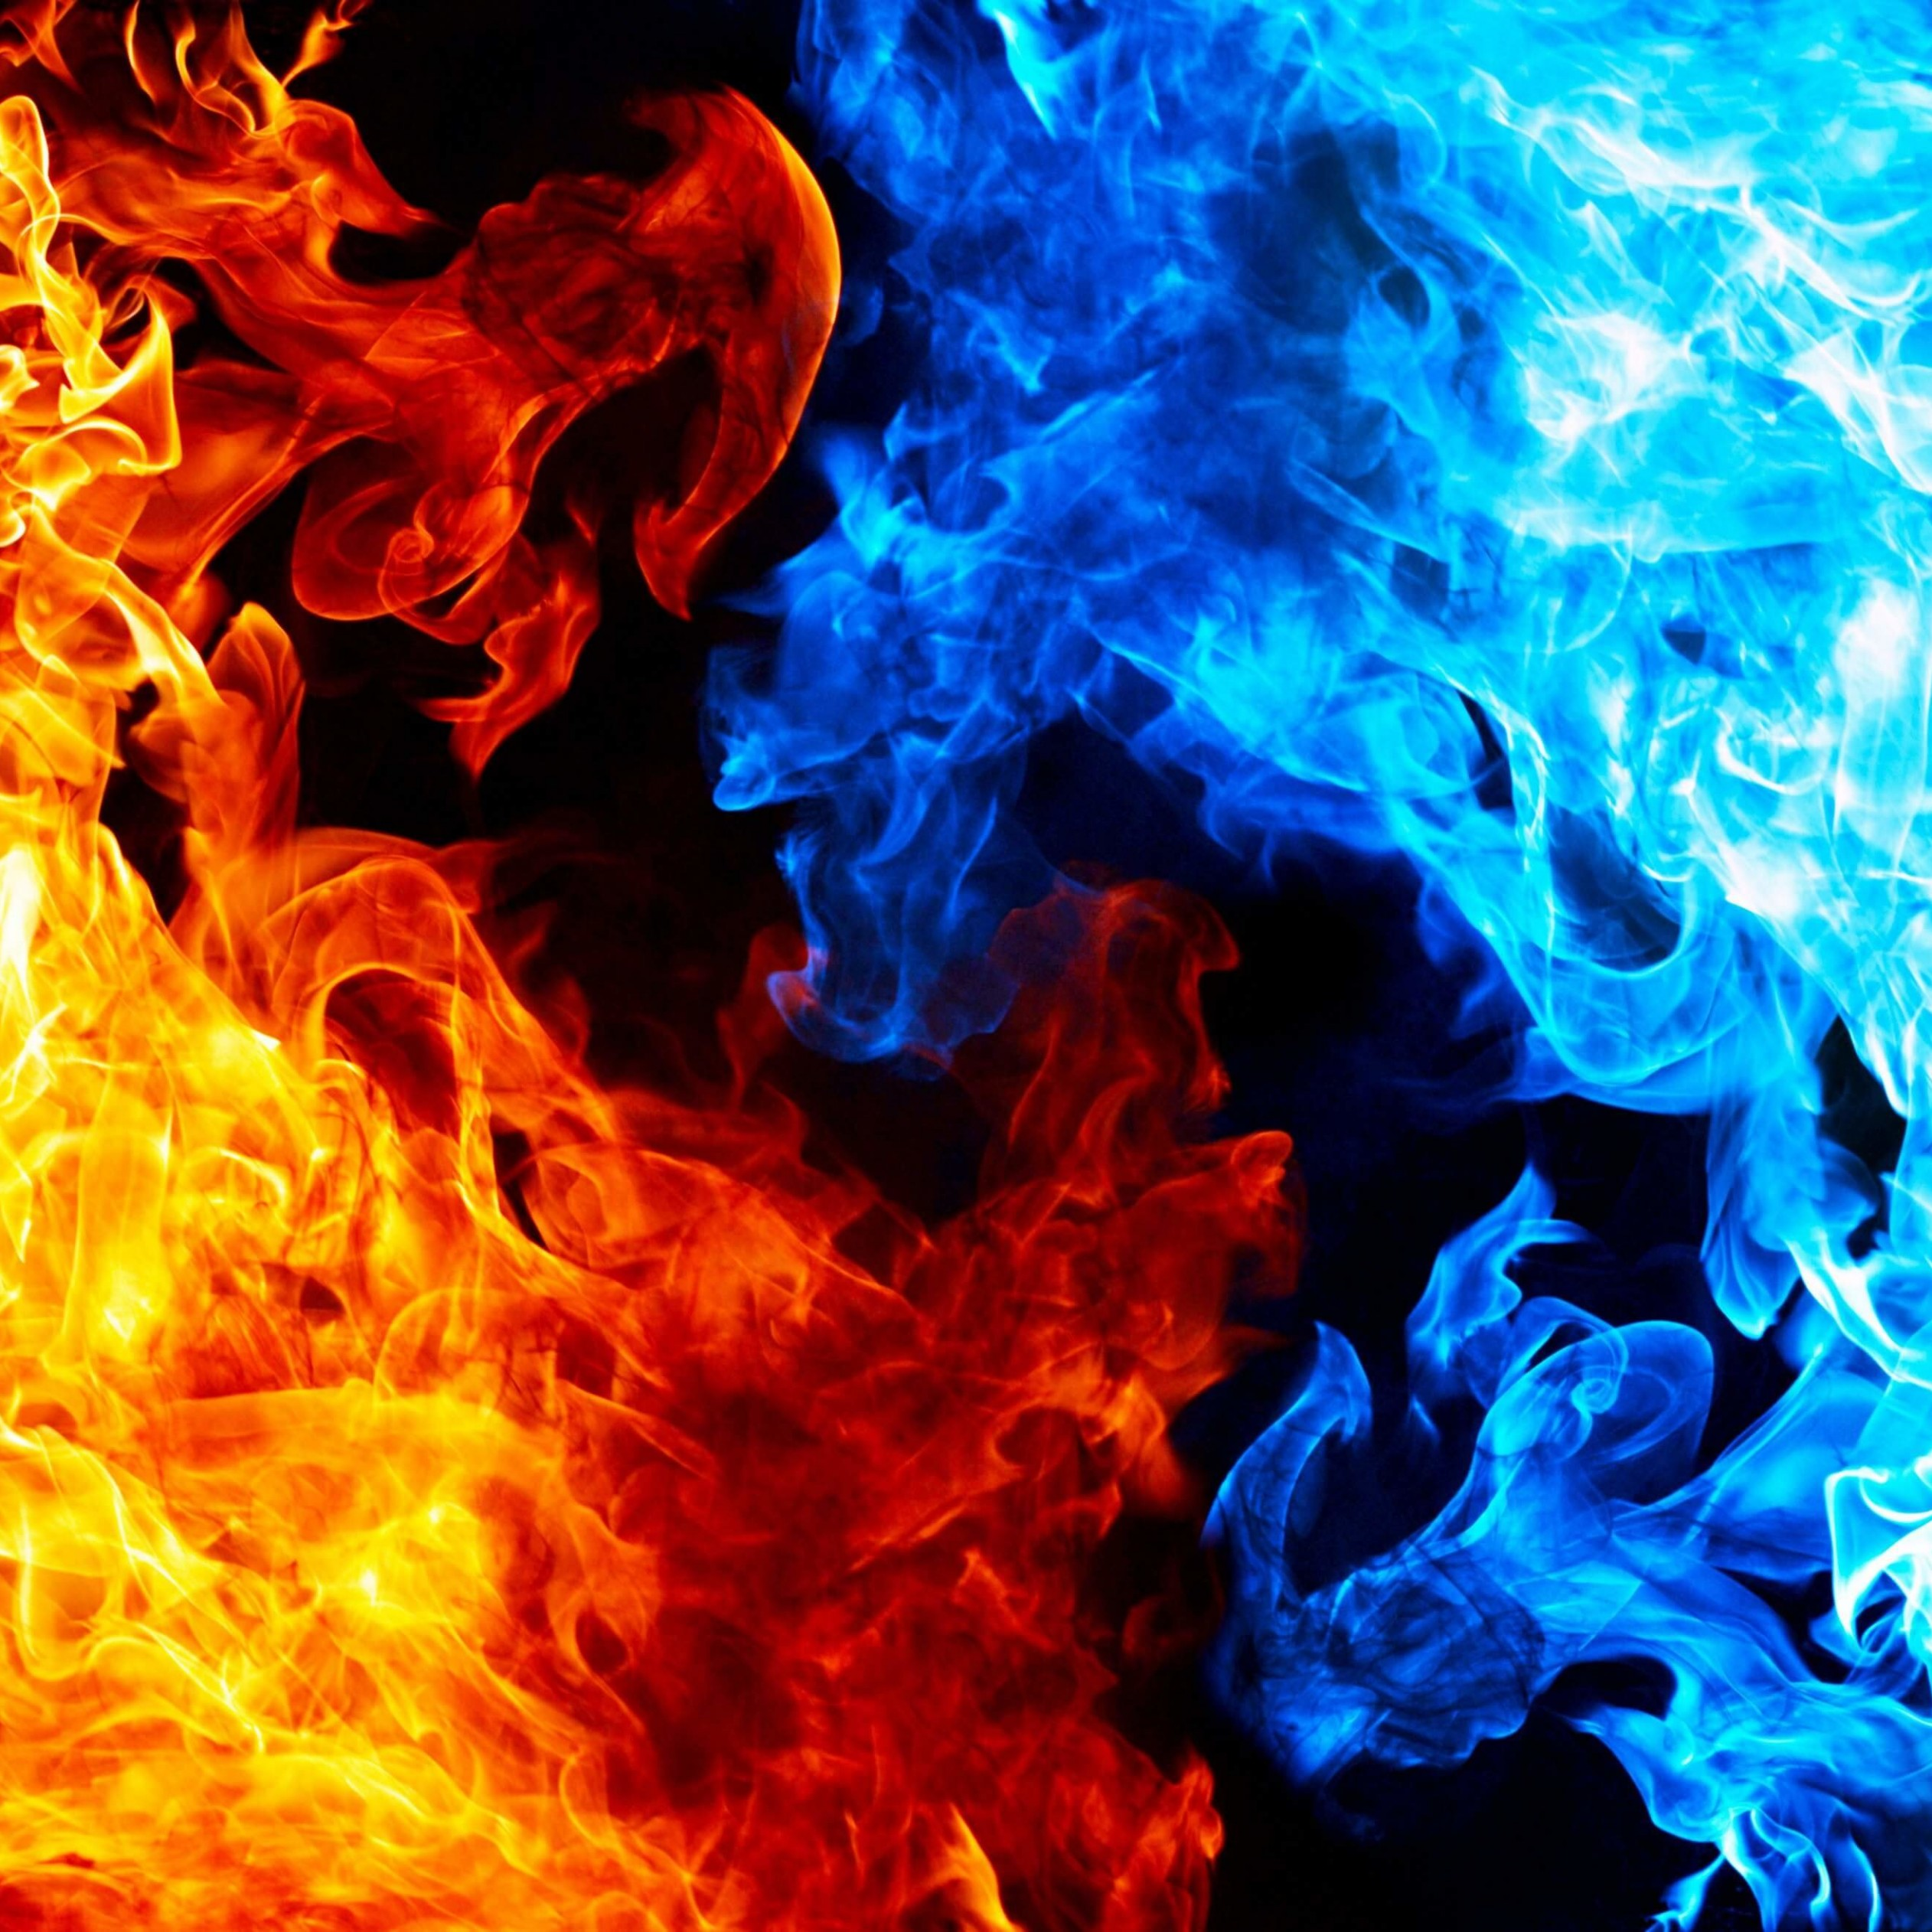 Blue And Red Fire Wallpaper for Apple iPad 4